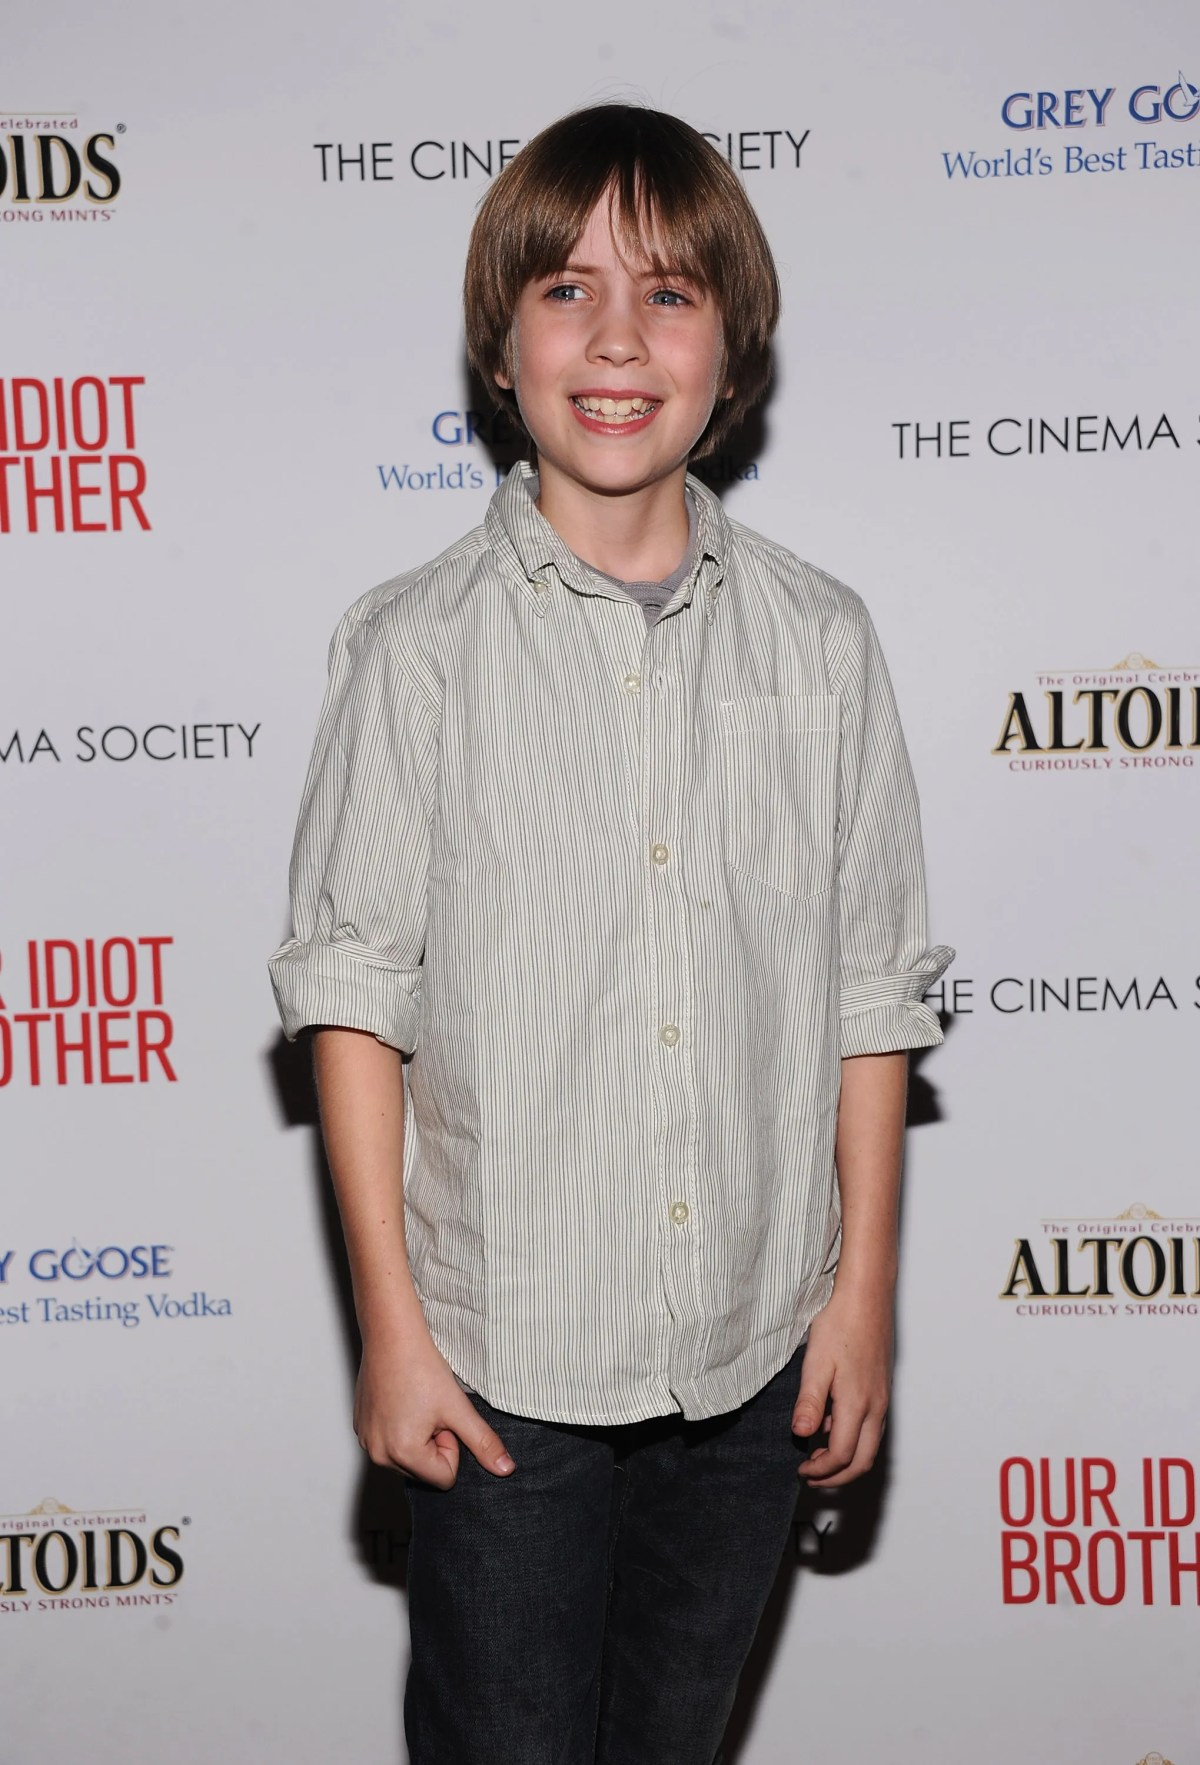 , Former child star Matthew Mindler, 'Our Idiot Brother' actor, died by suicide, coroner says, The Evepost National News